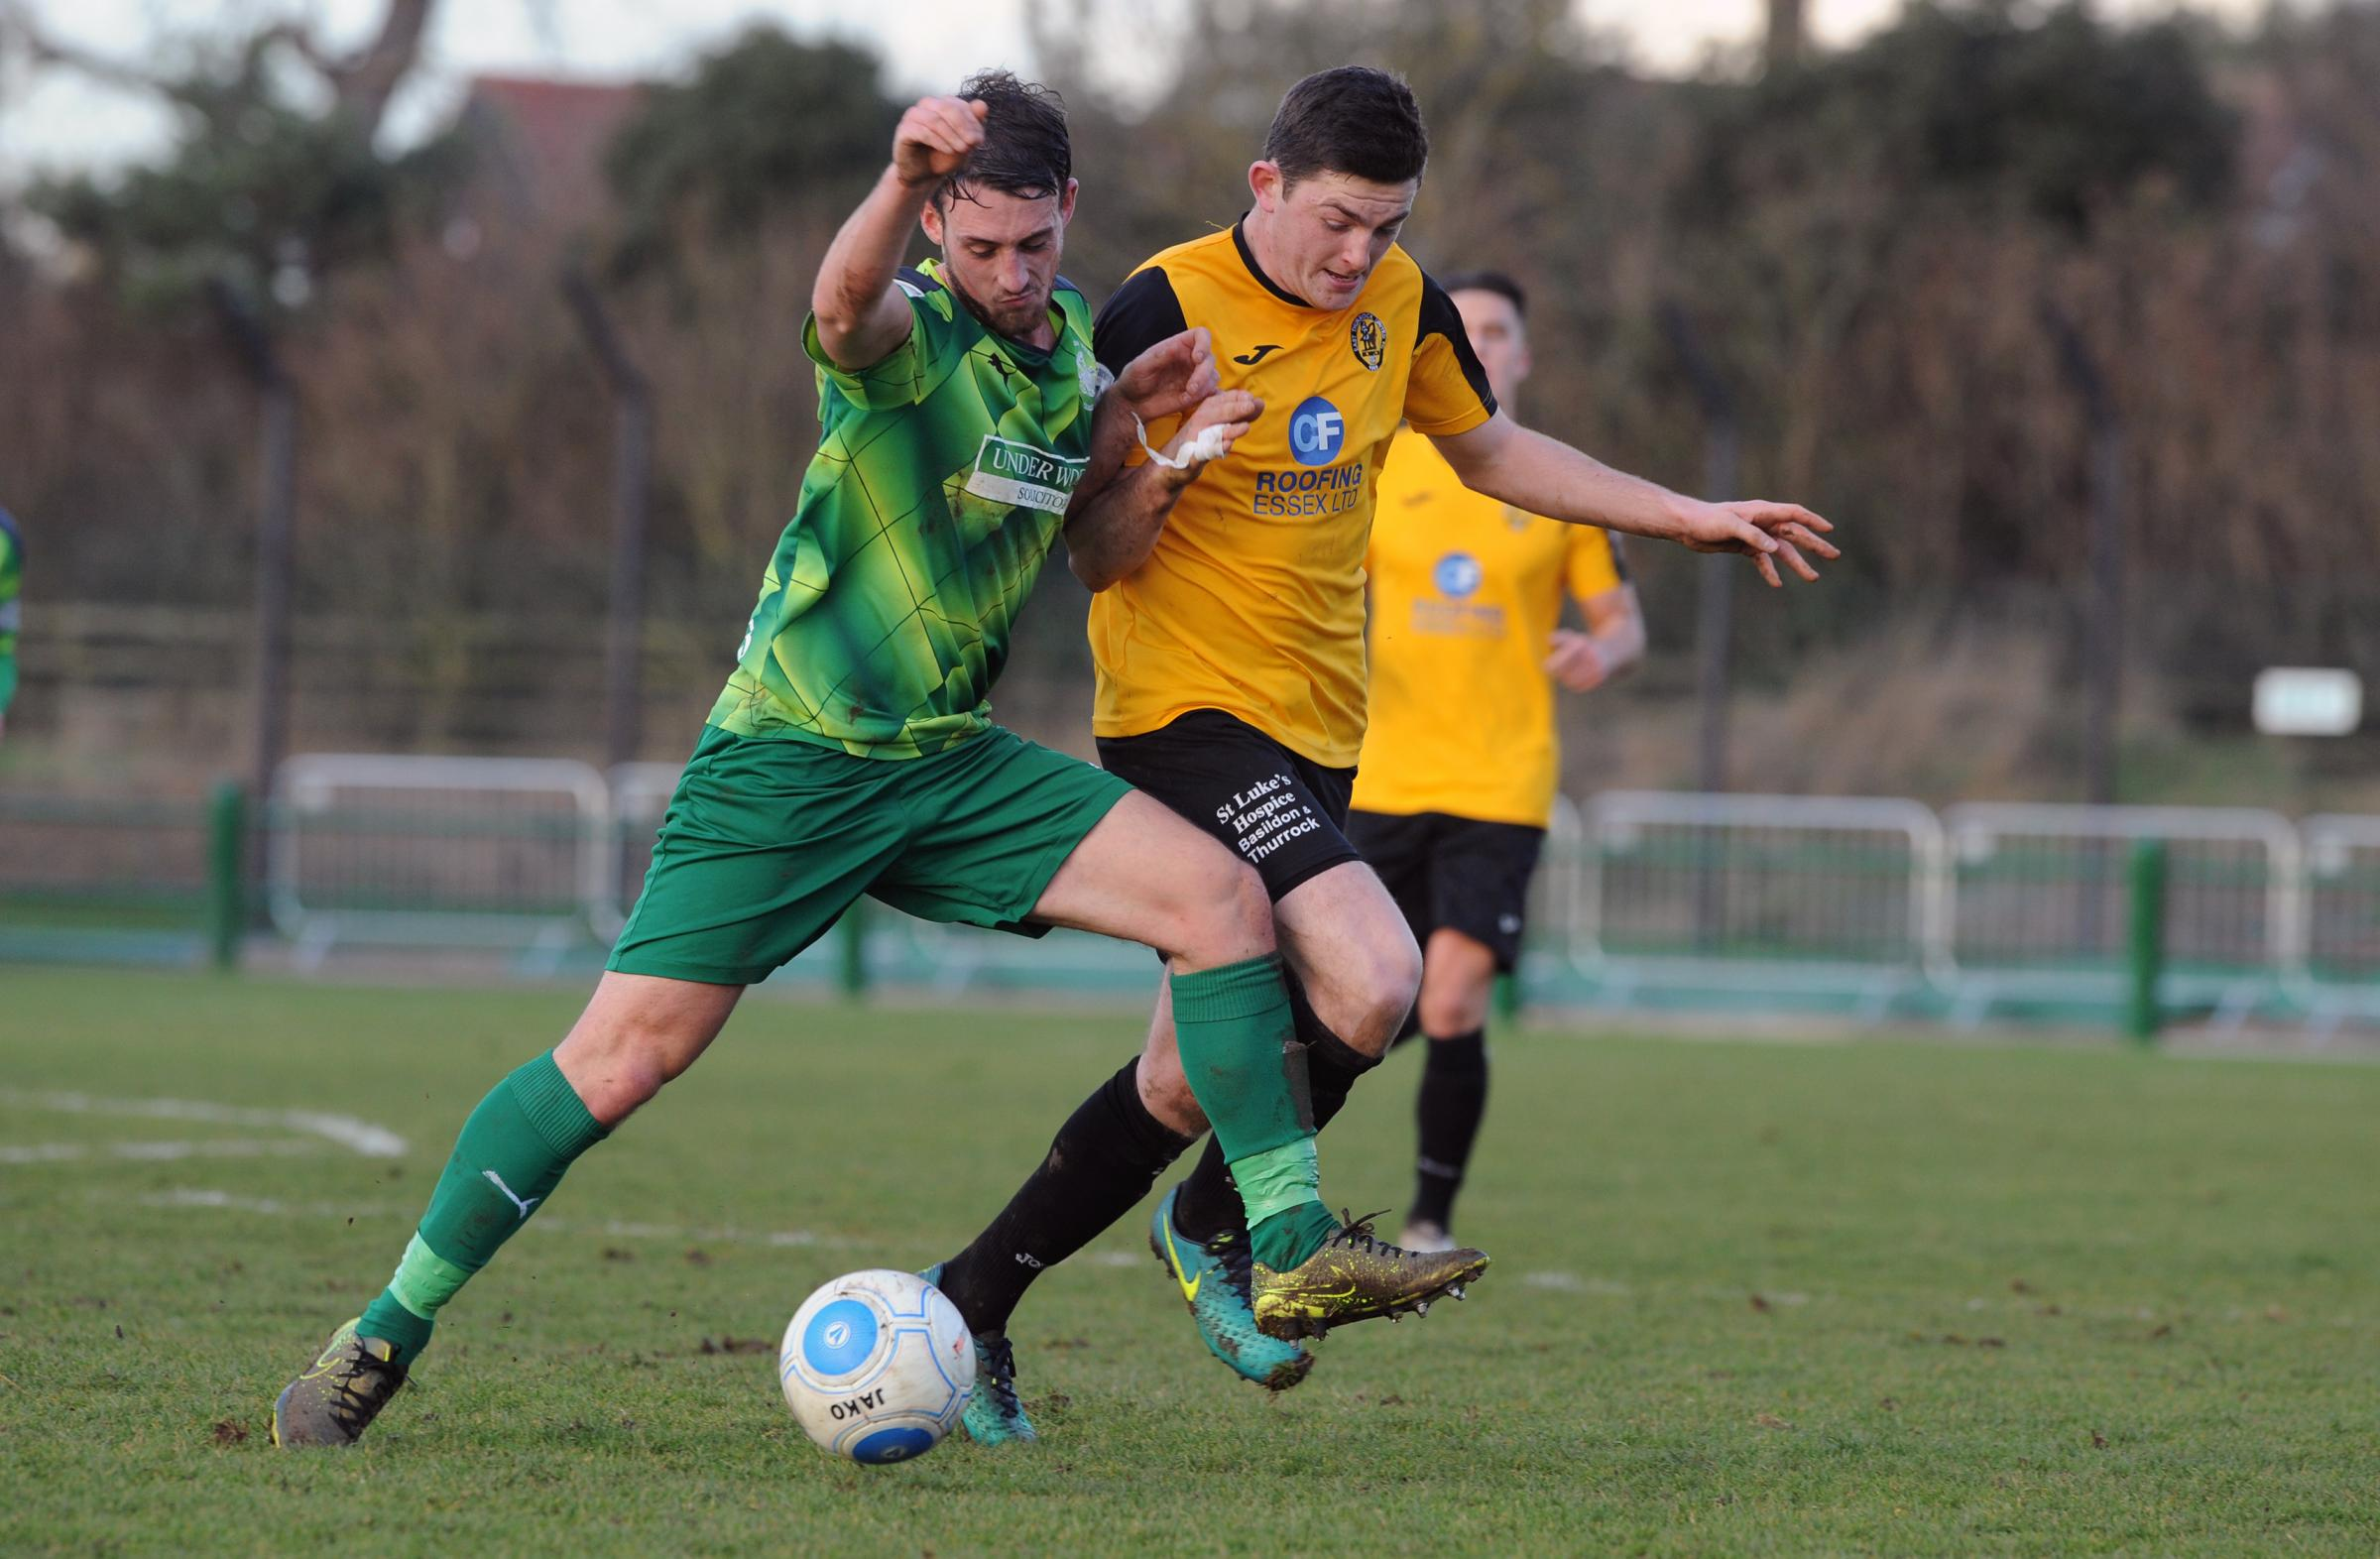 Chelmsford bound - Tom Wraight, pictured playing for East Thurrock